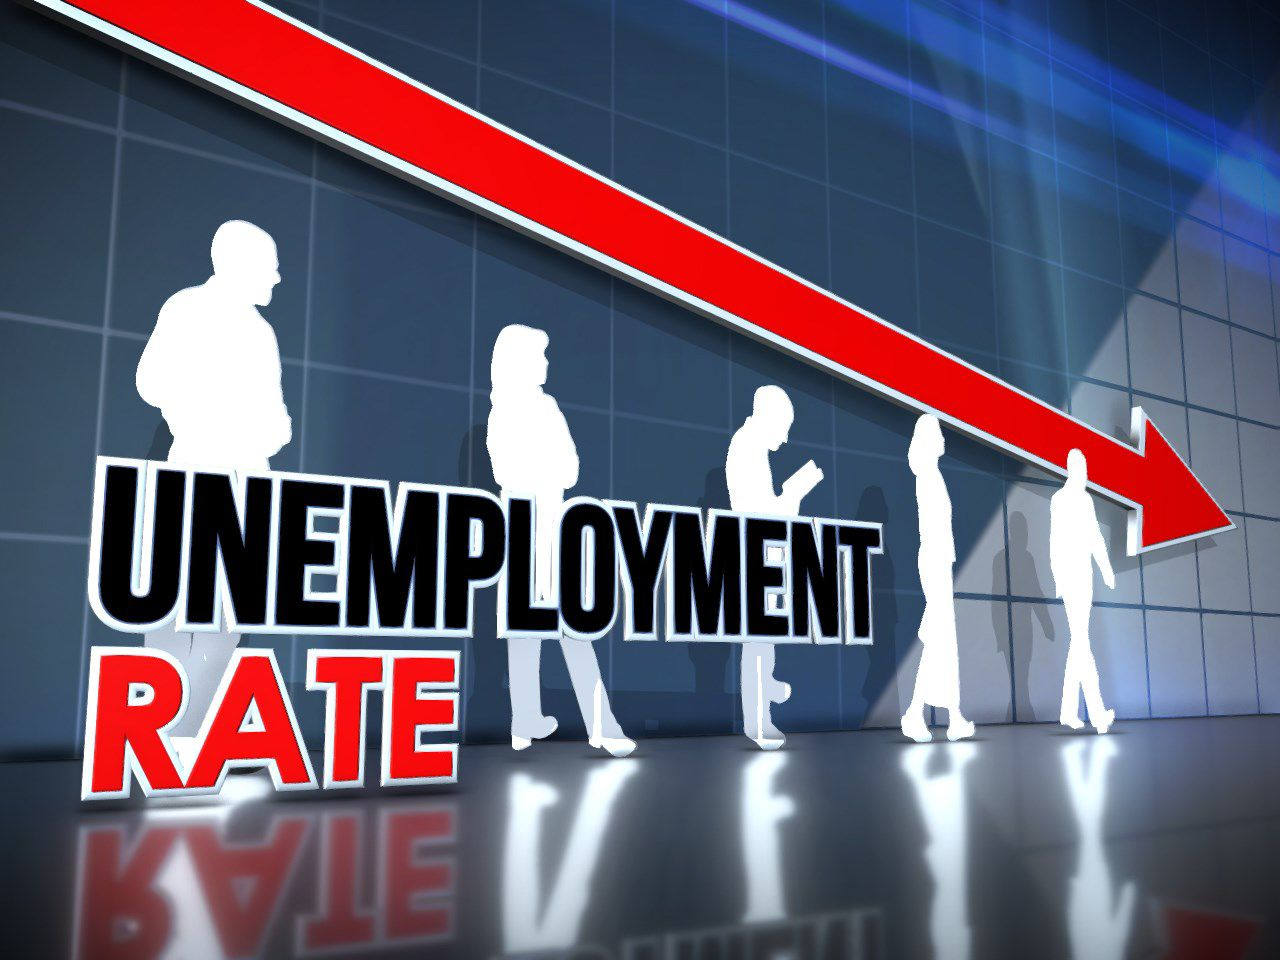 Illinois Unemployment Rate Increased Slightly In August